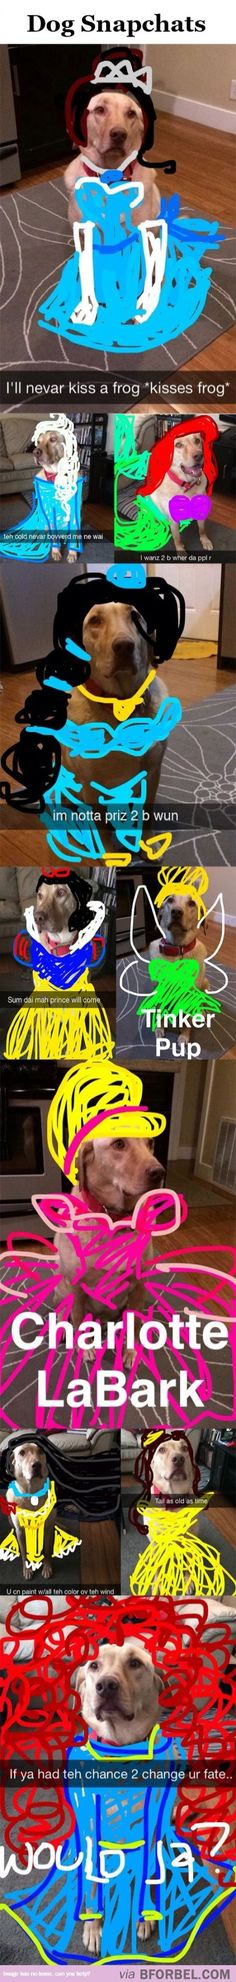 10 Snapchats That Turned This Dog Into A Disney Princess… | B for Bel